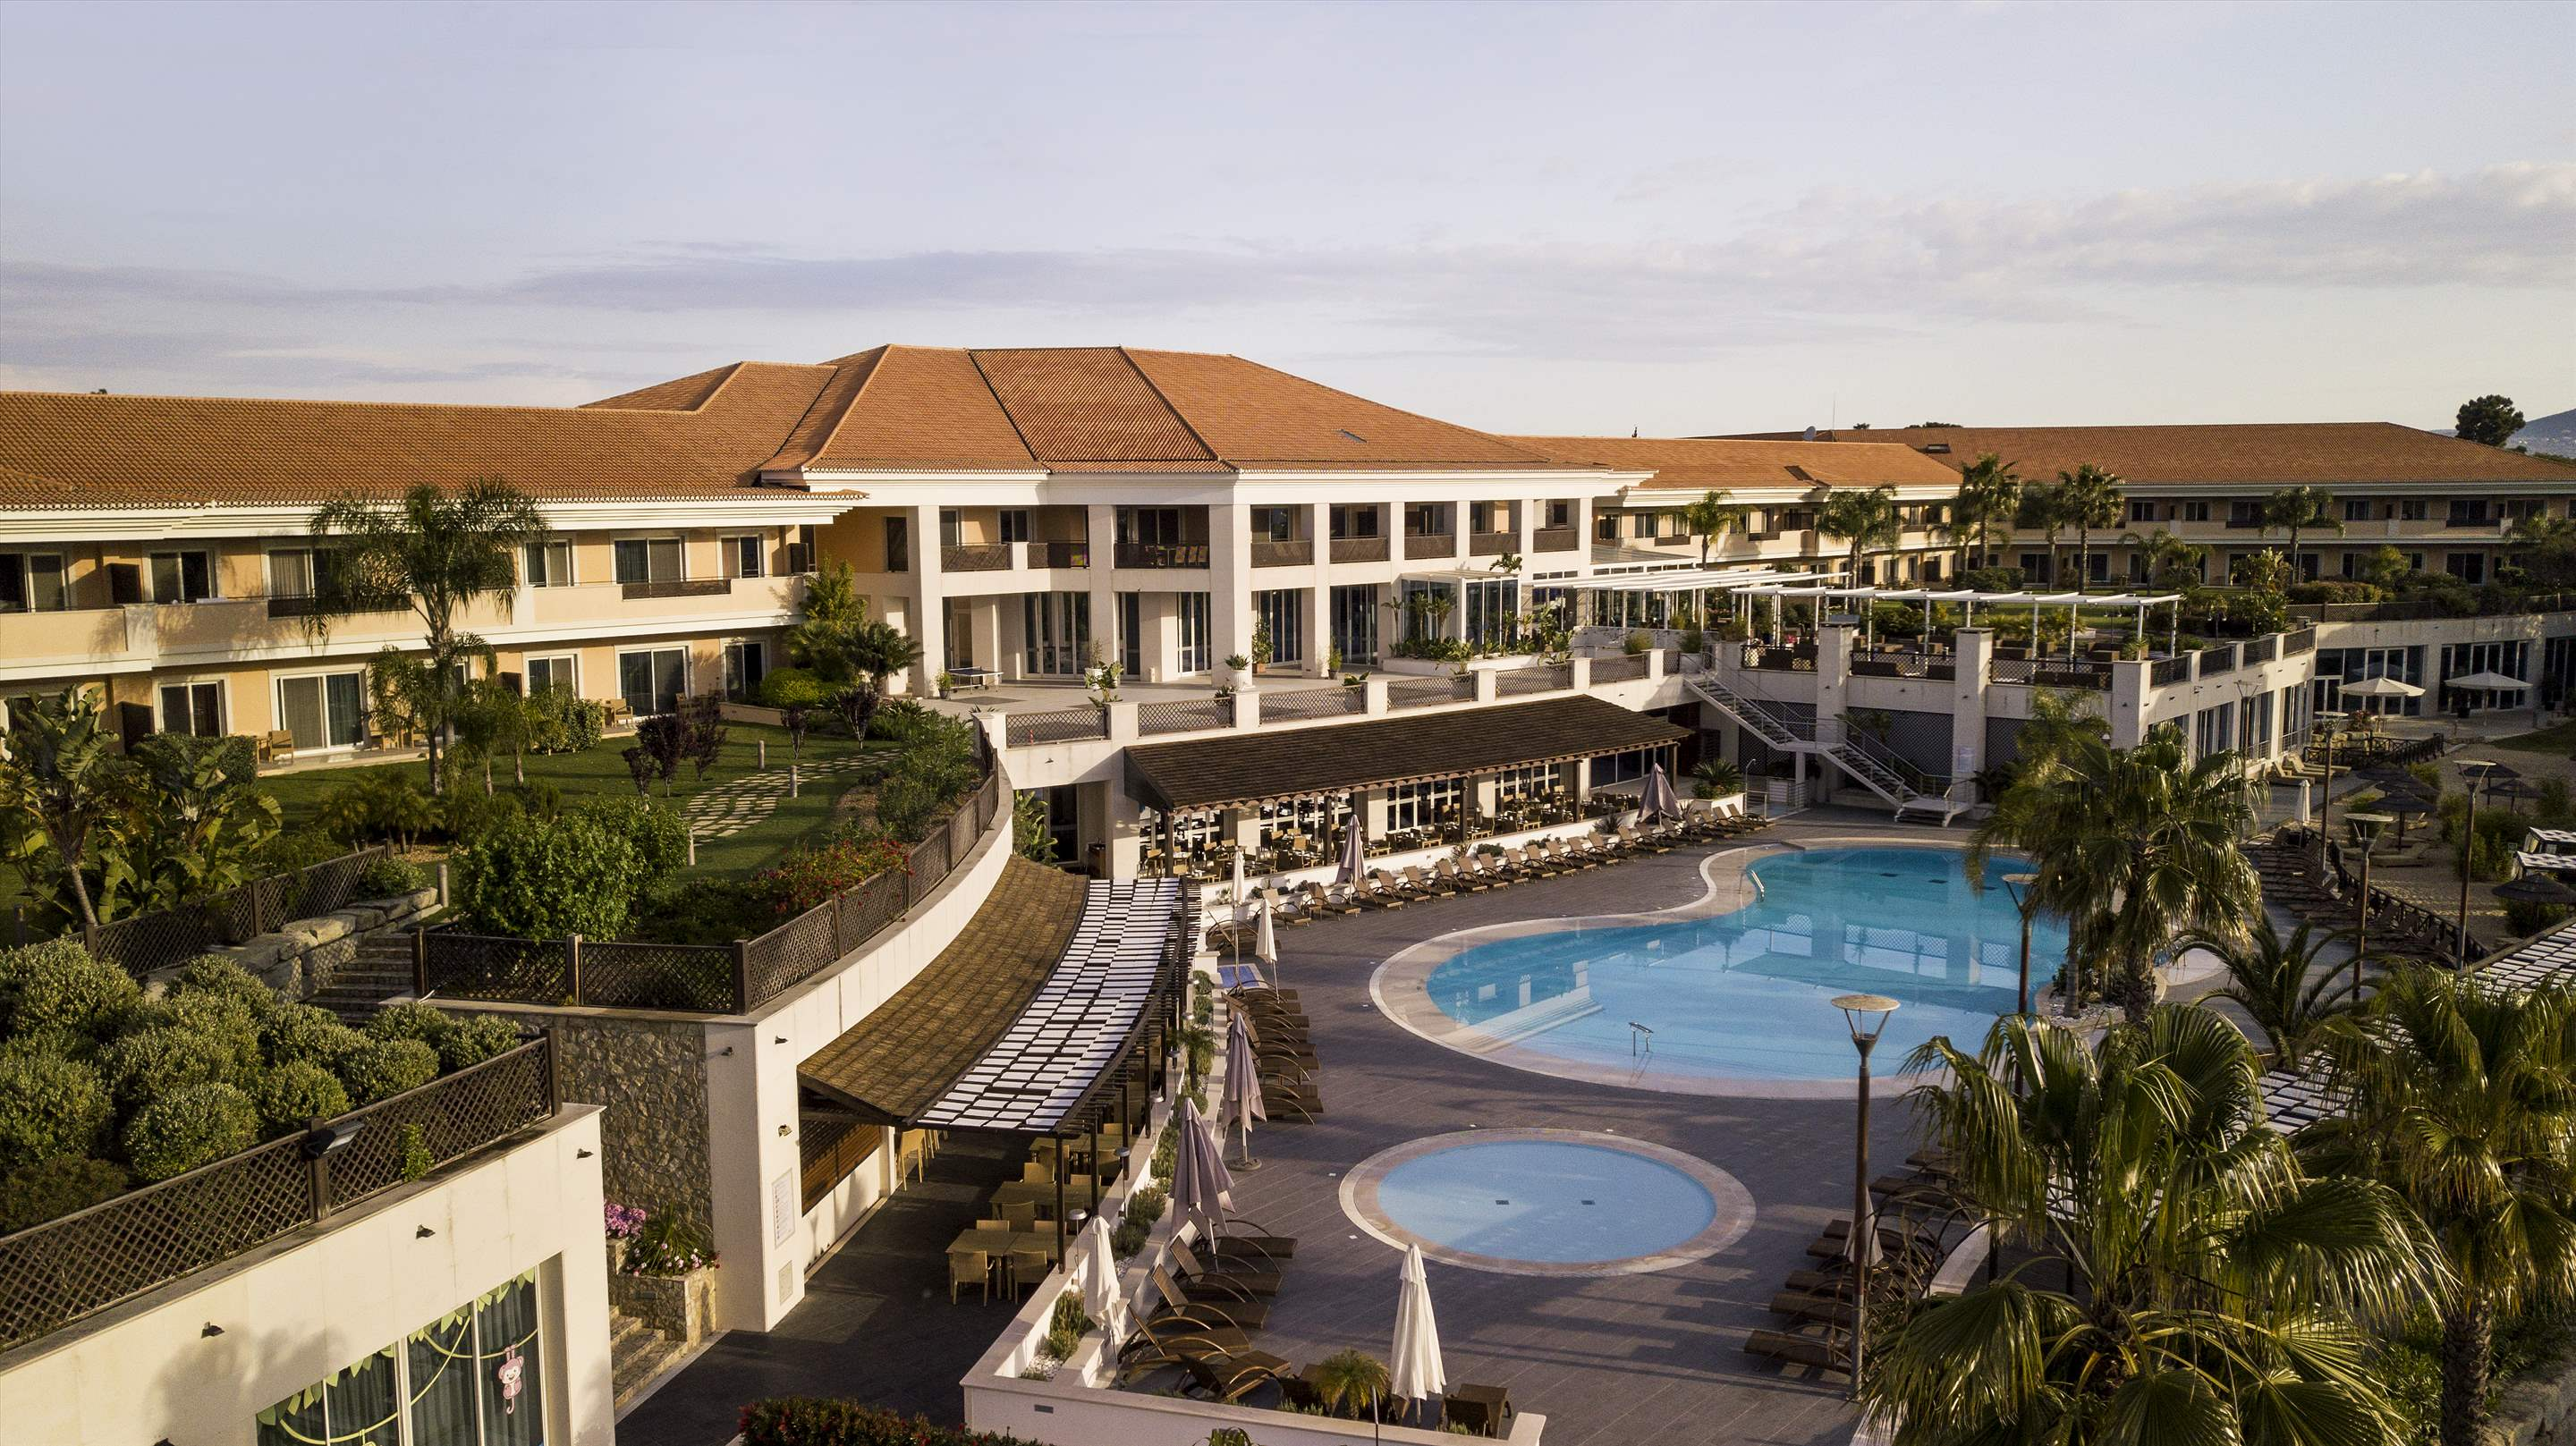 Wyndham Grand Algarve 1 Bedroom, Sunset Suite, Room Only, 1 bedroom apartment in Wyndham Grand Algarve, Algarve Photo #28